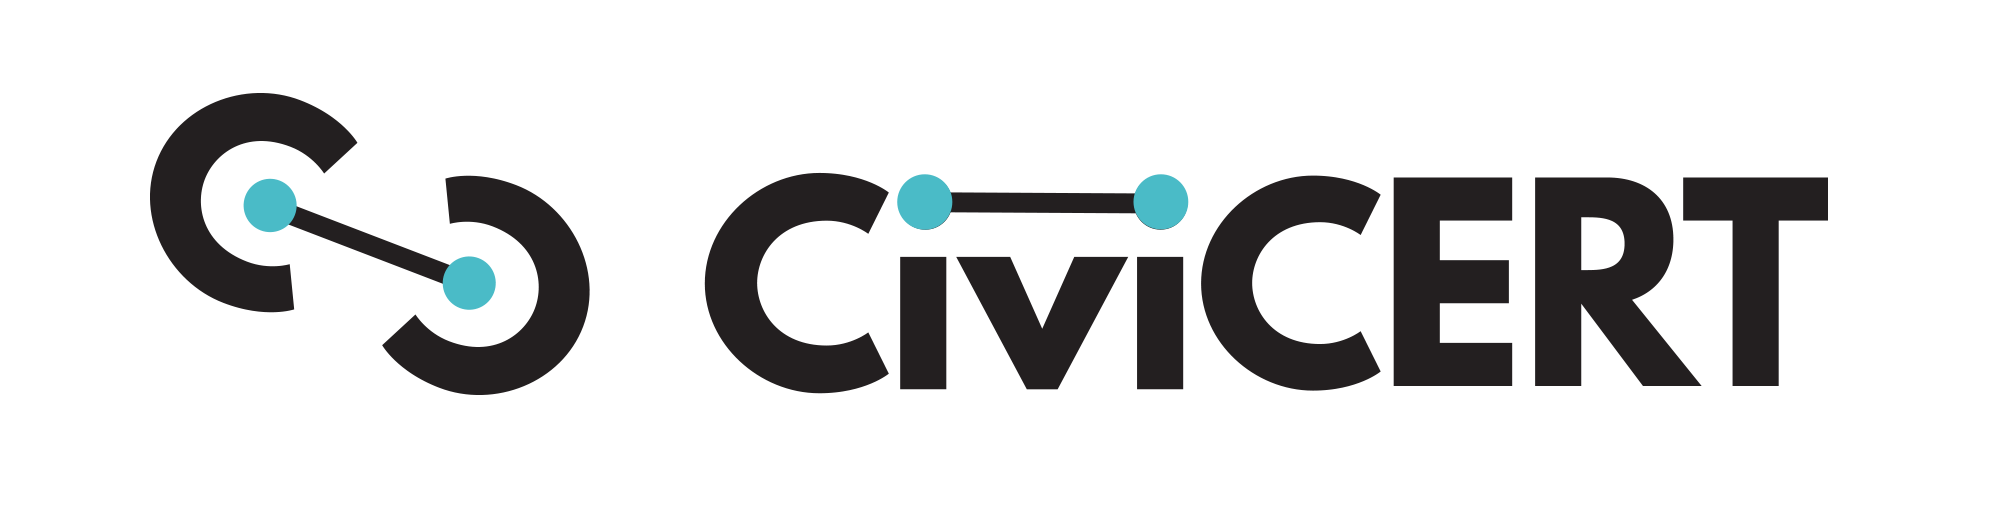 CiviCERT logo